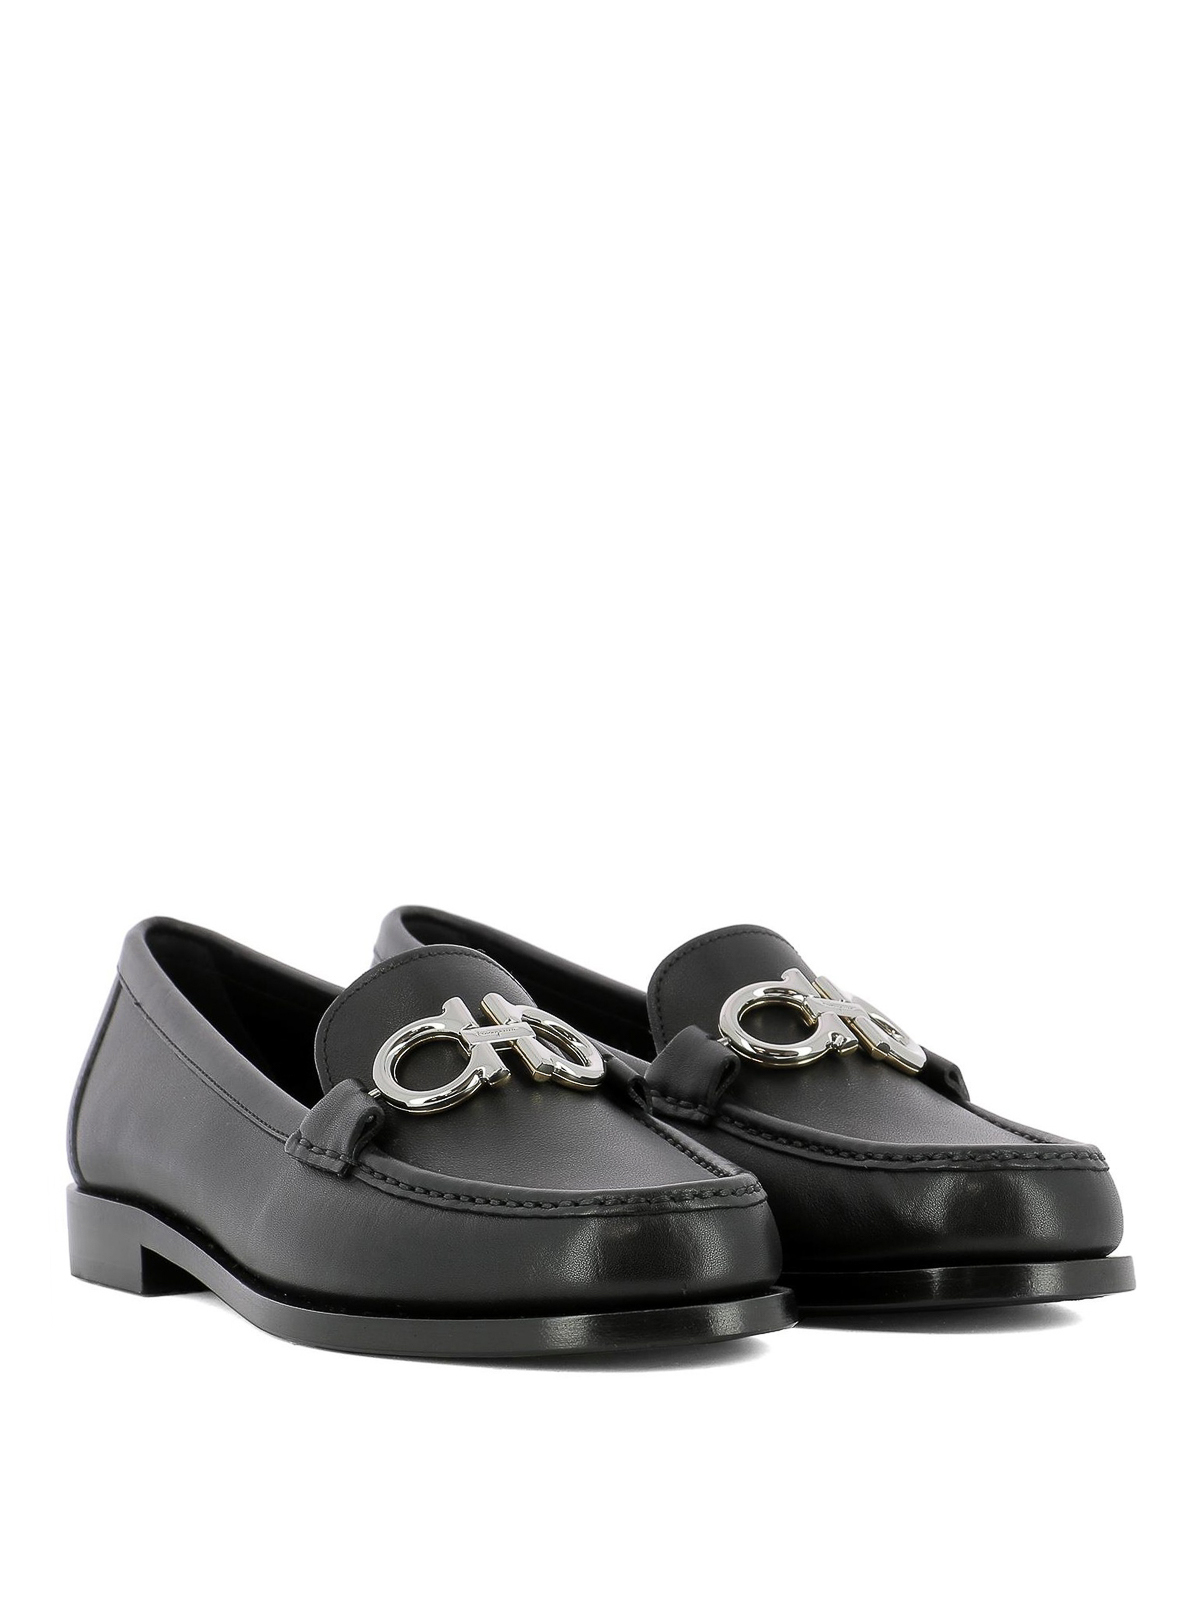 Rolo black leather loafers with Gancini